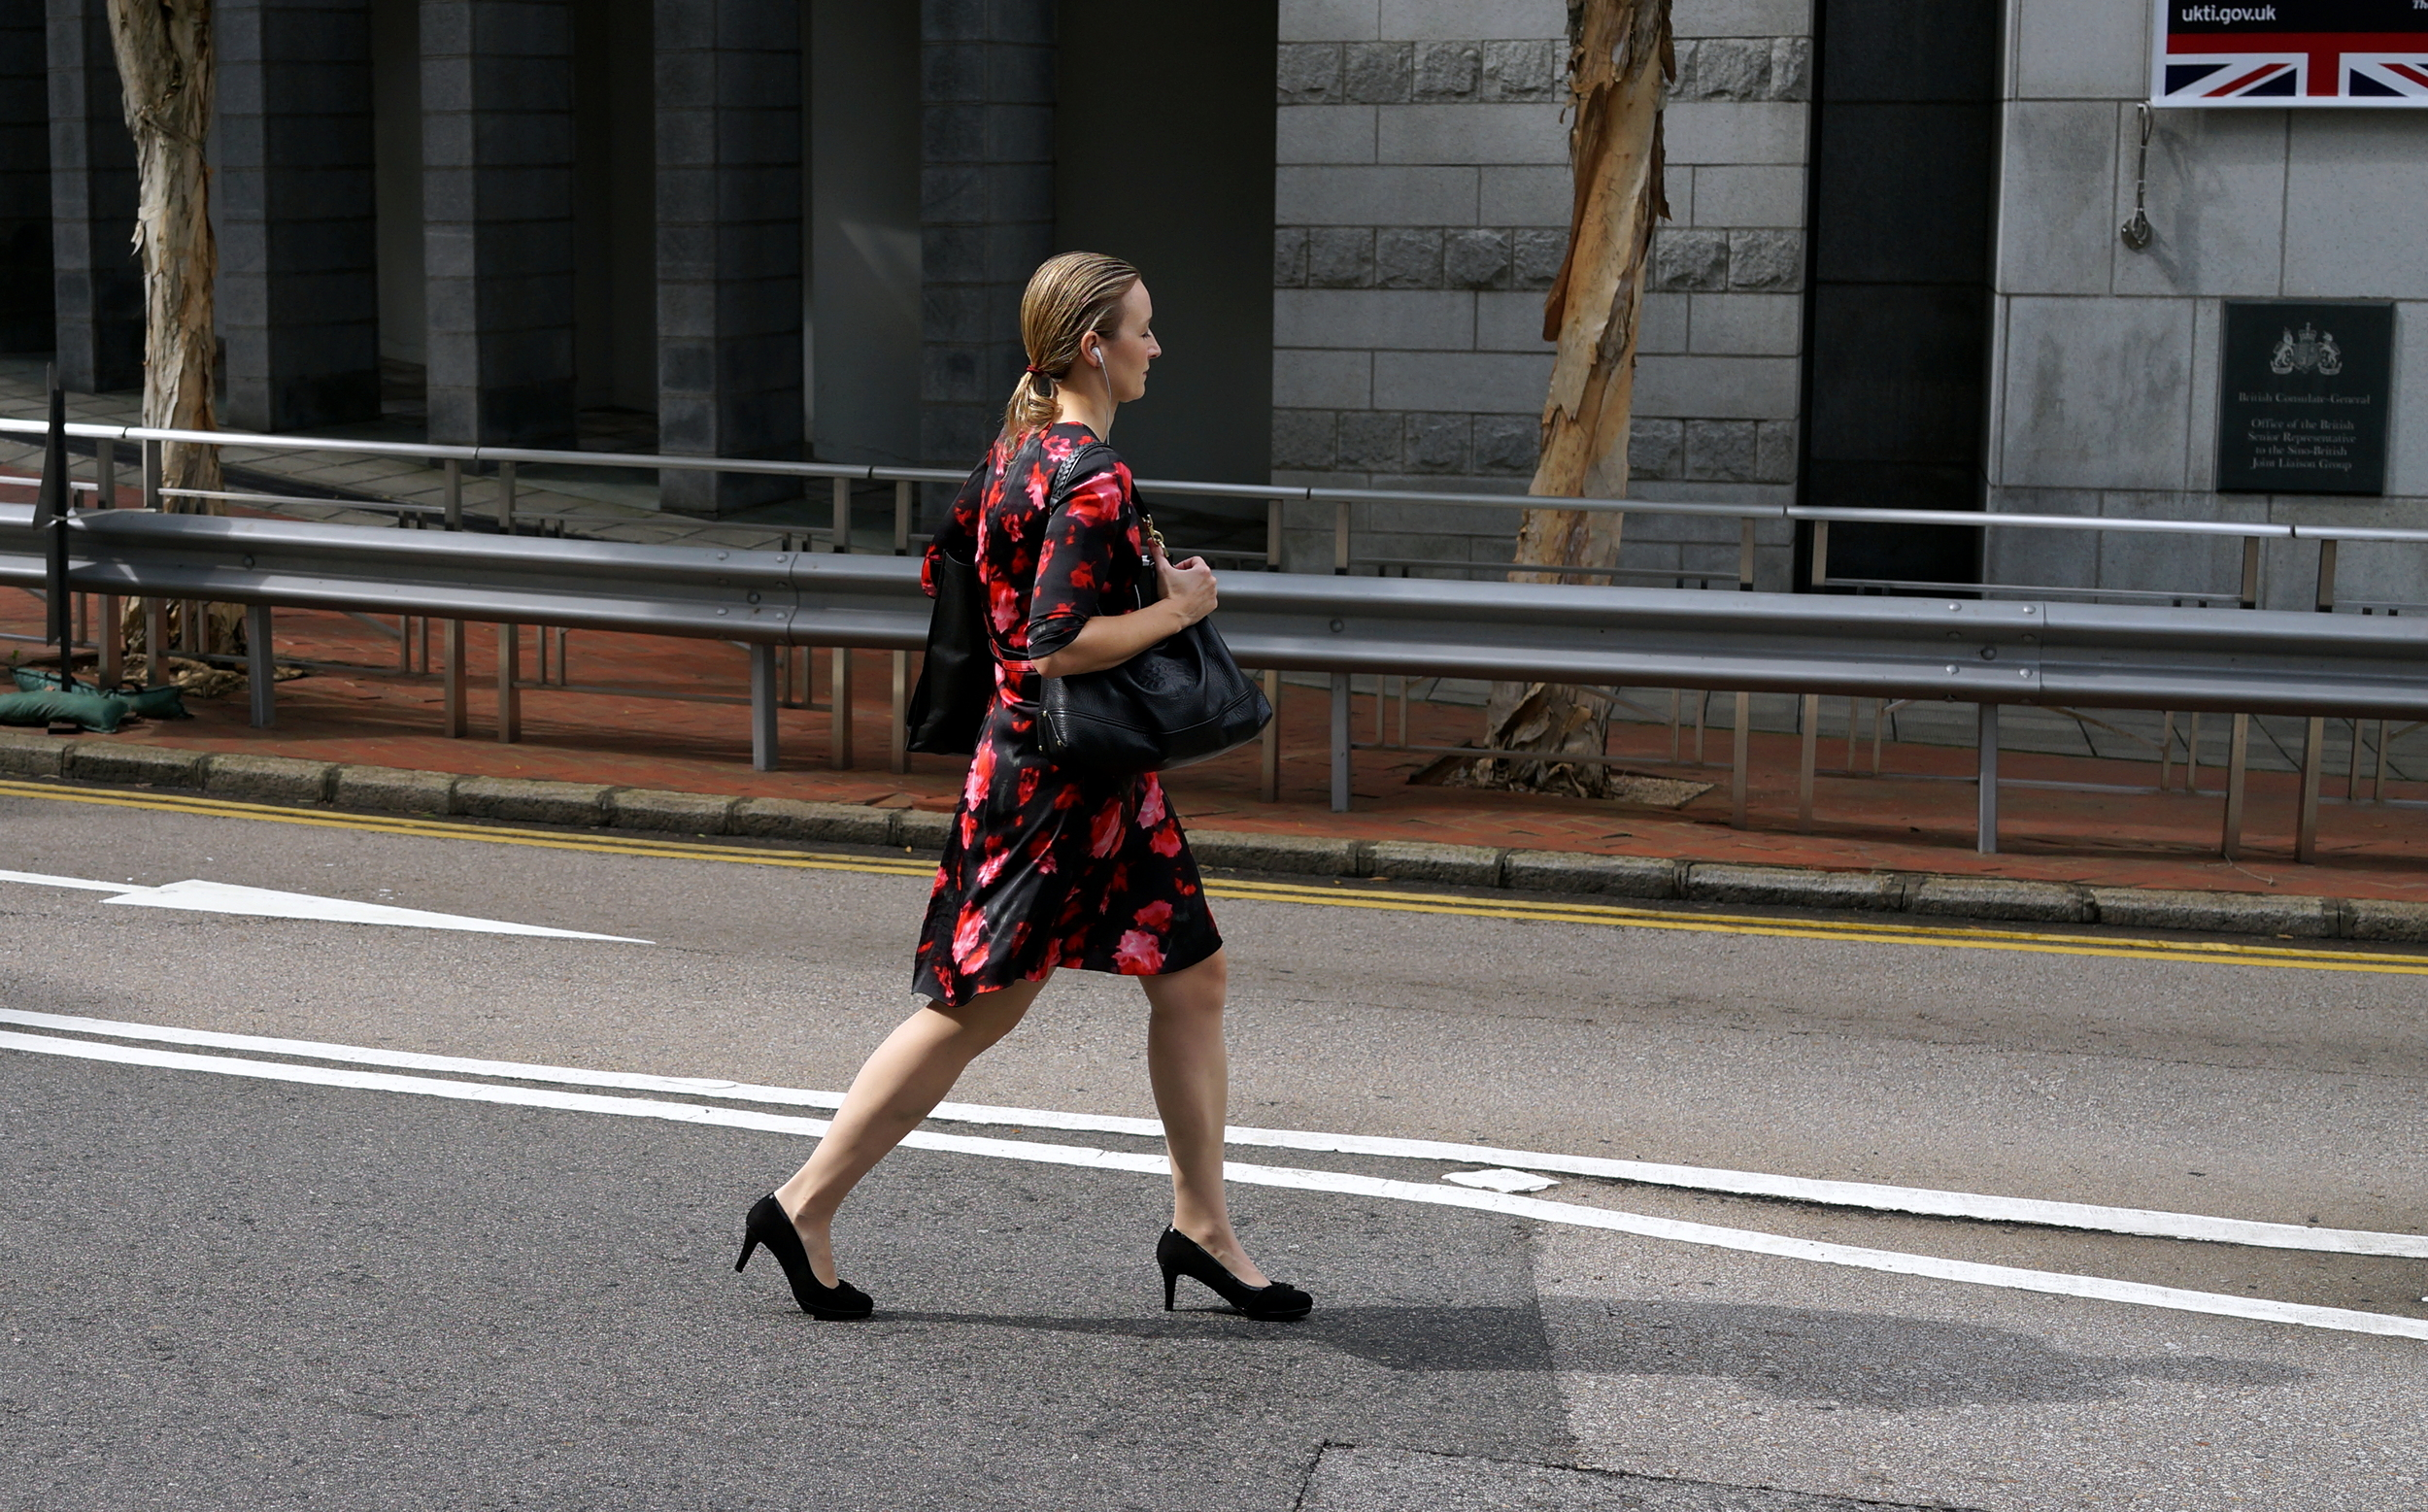 Elegant lady crossing the street near the British Consulate on Justice Drive at Admiralty..